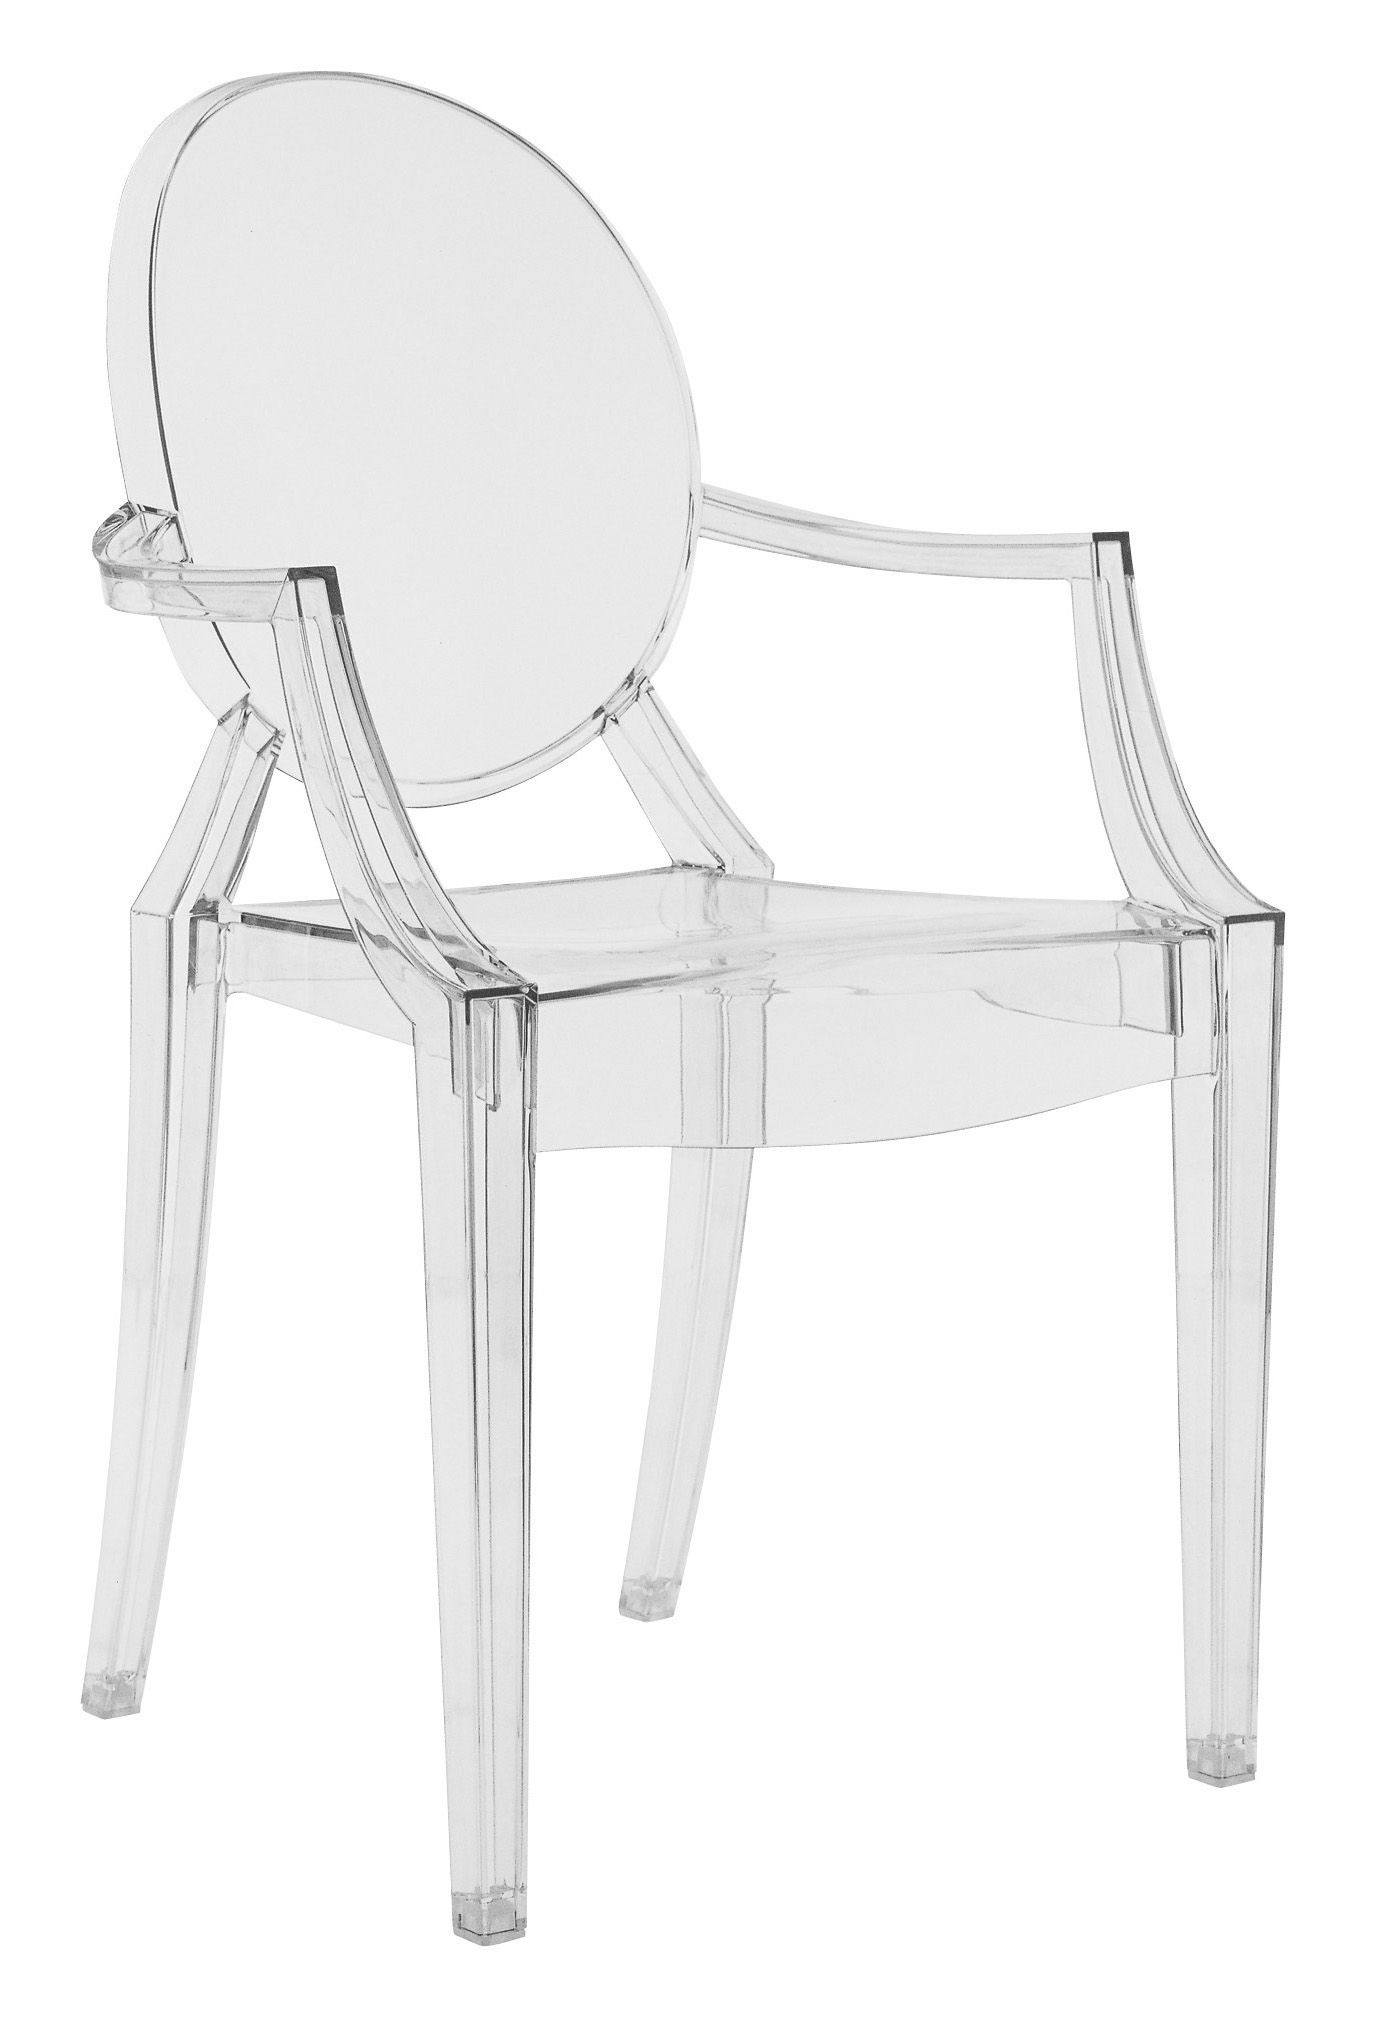 philippe starck ghost chair crate and barrel dining table chairs fauteuil louis kartell made in design